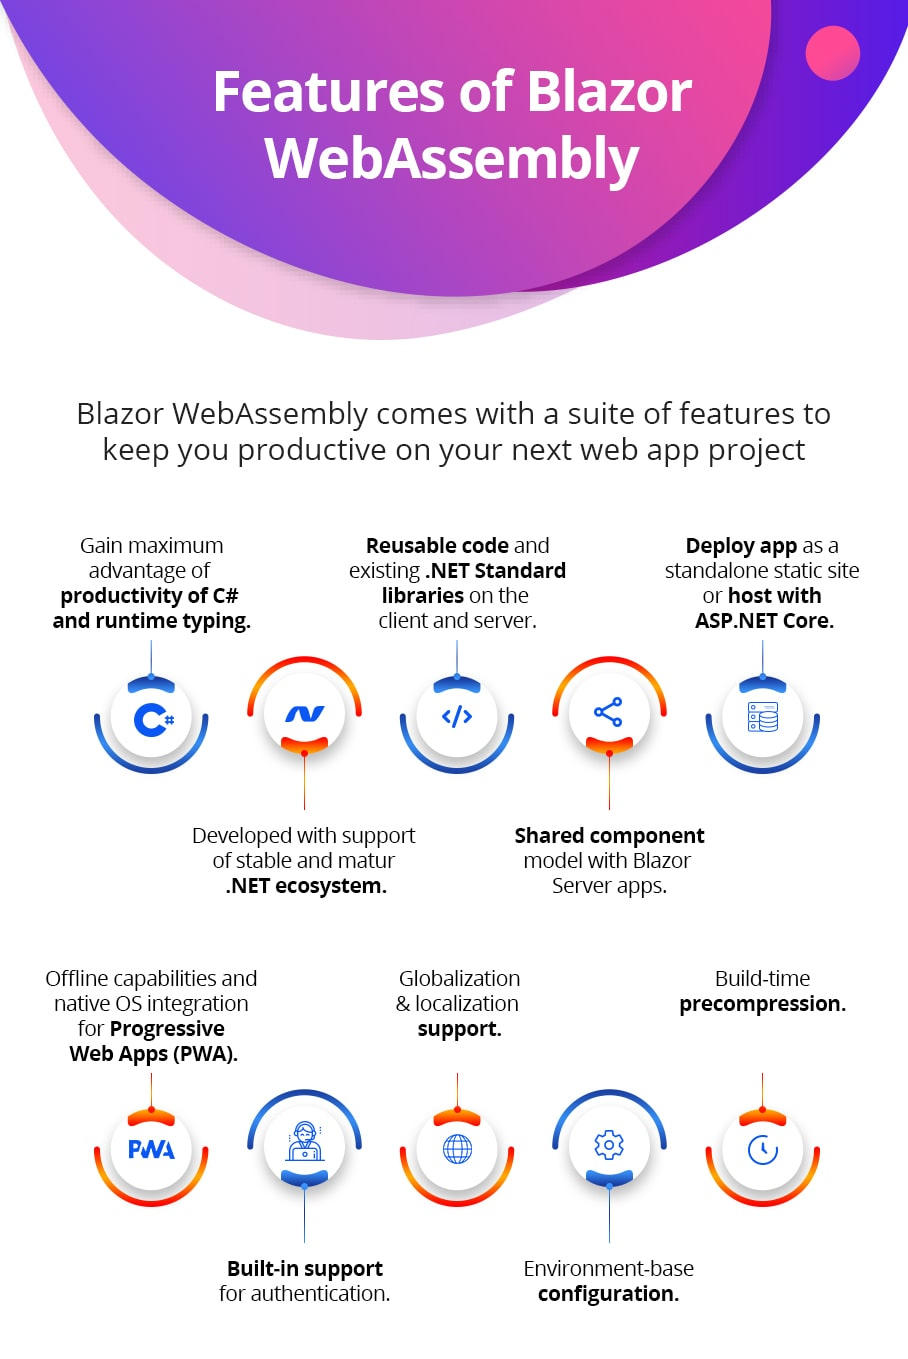 Features of Blazor WebAssembly